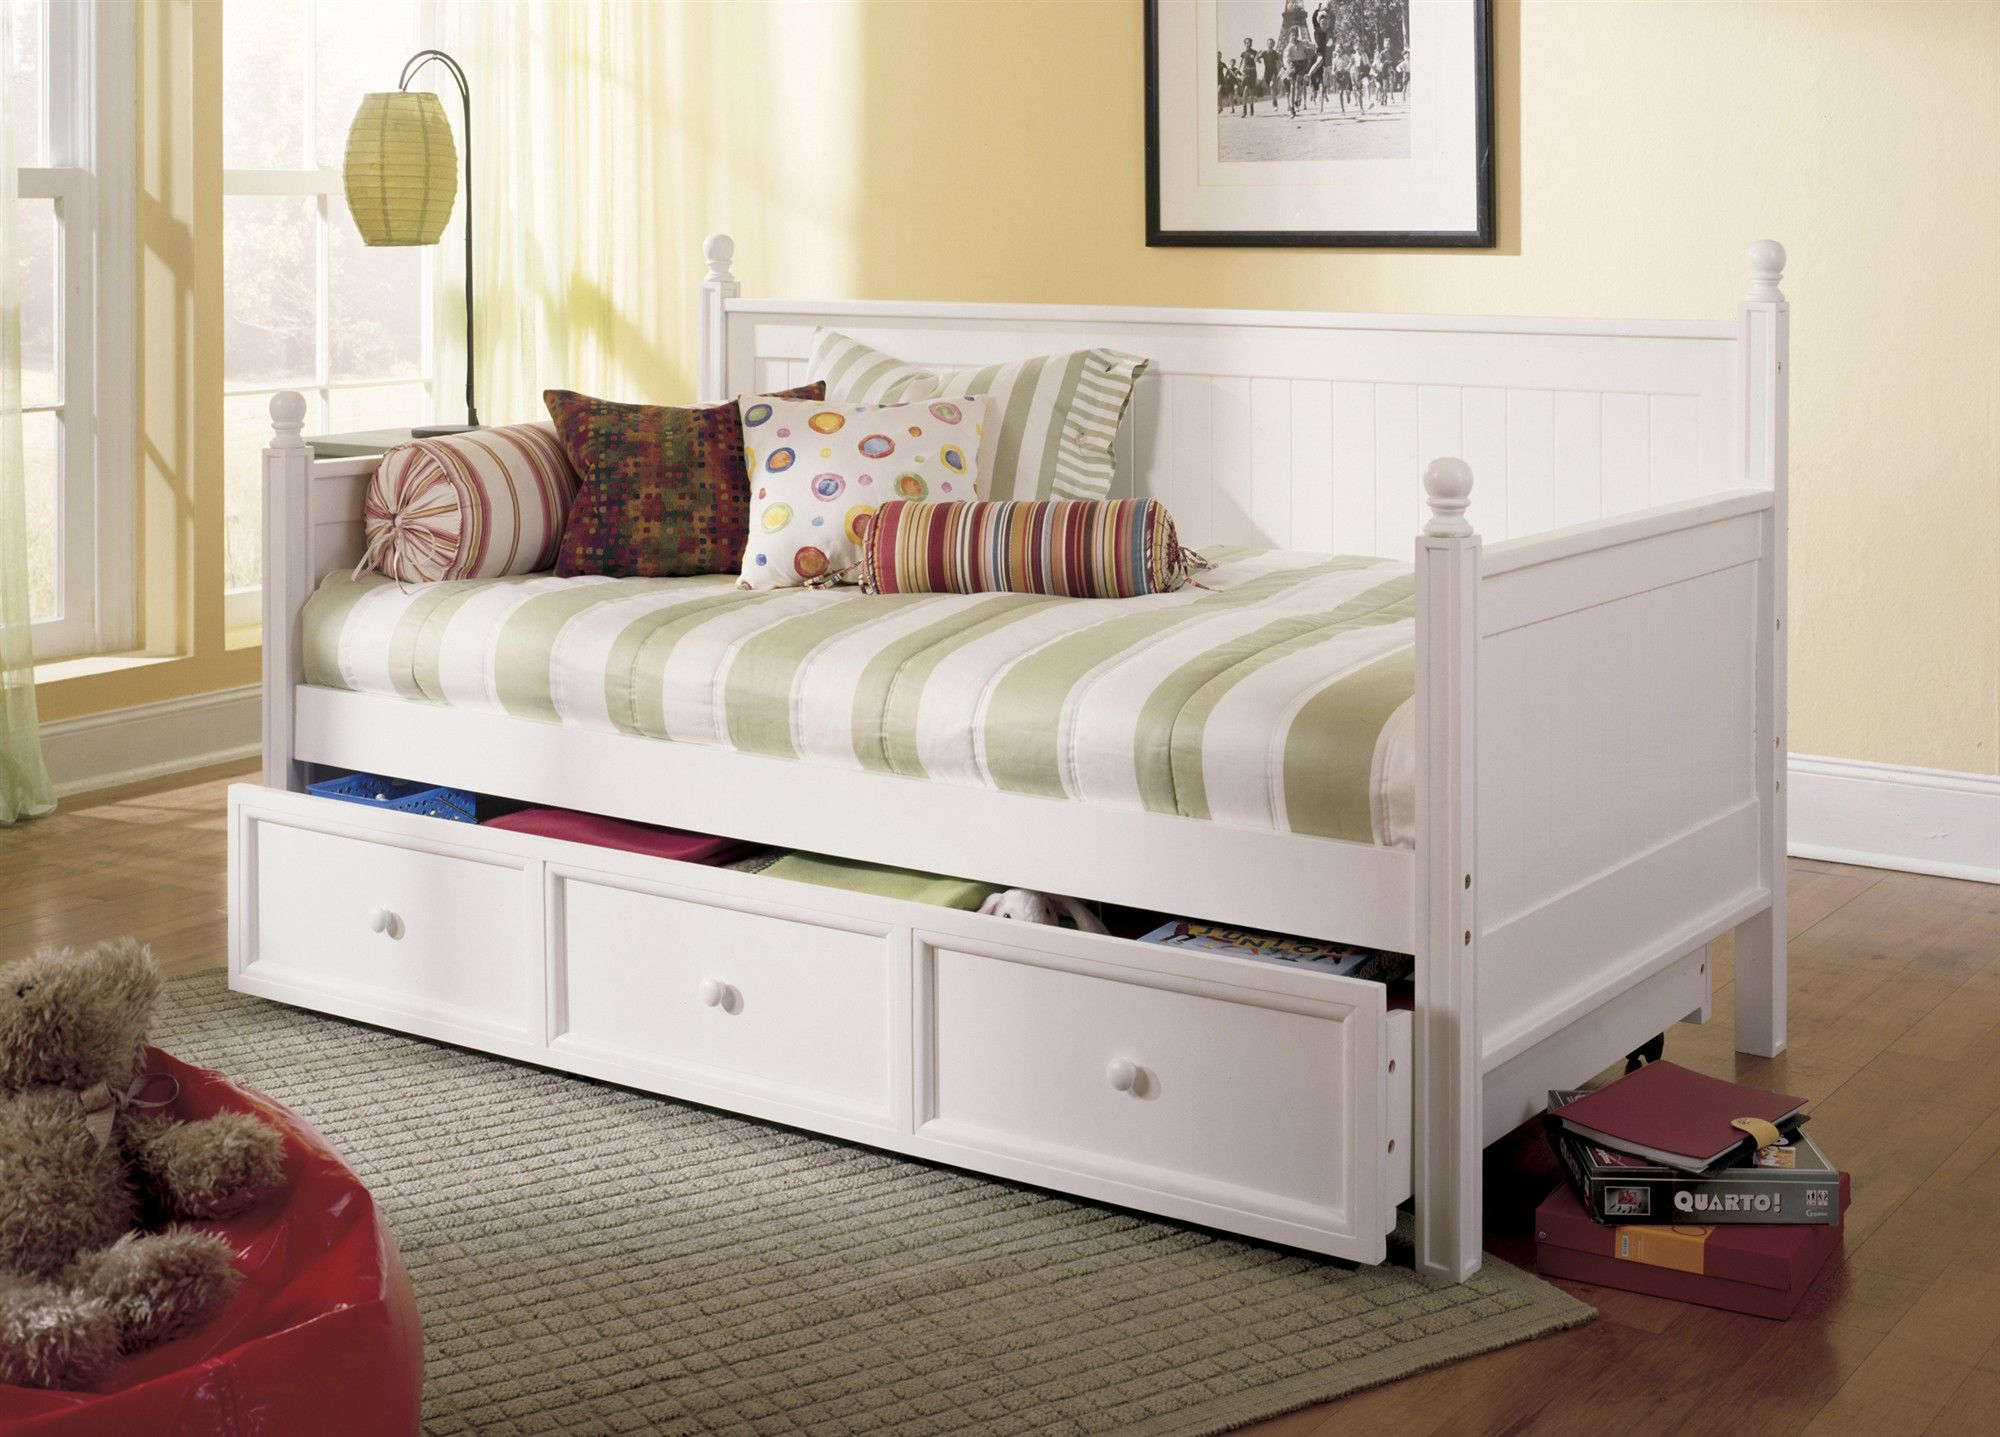 Ikea day beds hemnes home design ideas - Fashion Bed Group Casey Ii Daybed White With Trundle This Daybed Can Go From Country Casual To Sleepover Central In The Blink Of An Eyelet Coverlet